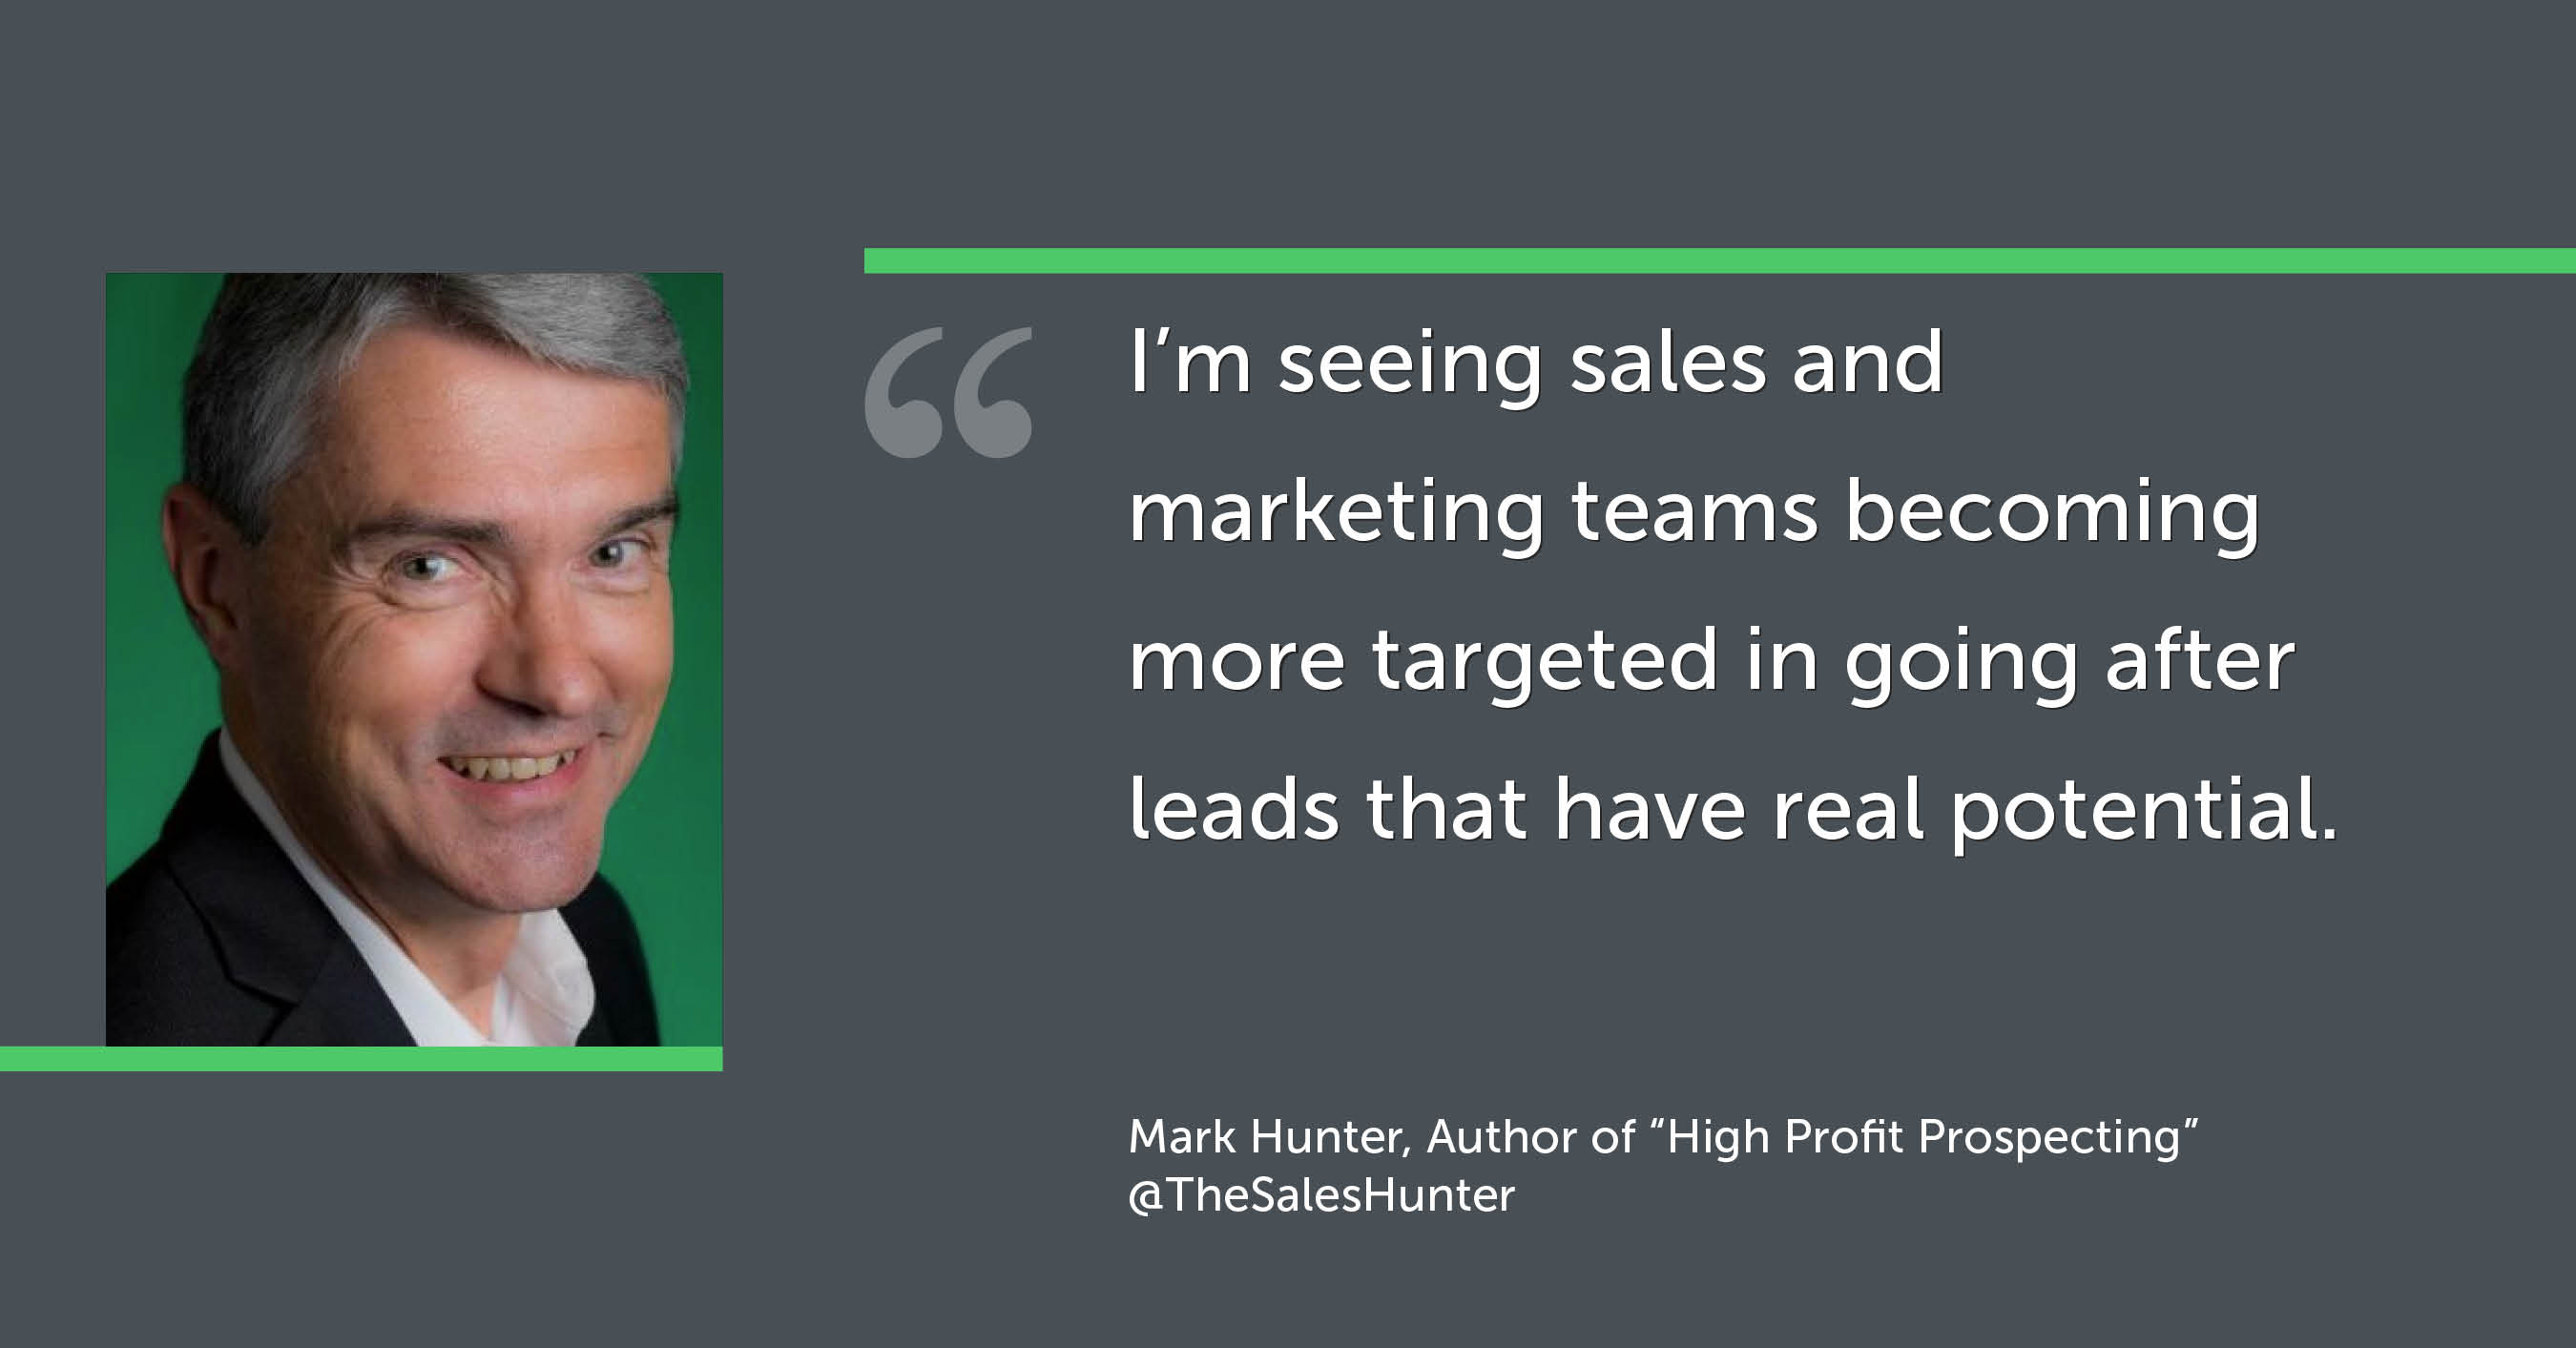 Mark Hunter sales expert